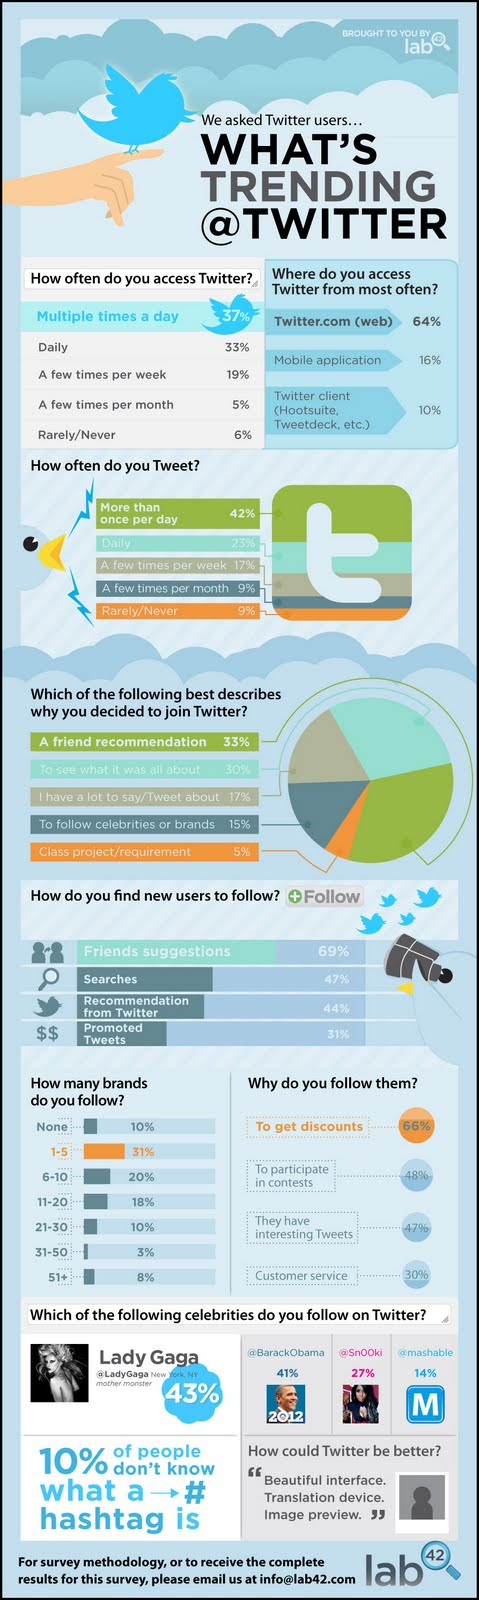 What's trending on Twitter infographic from Bobby Owsinski's Music 3.0 blog